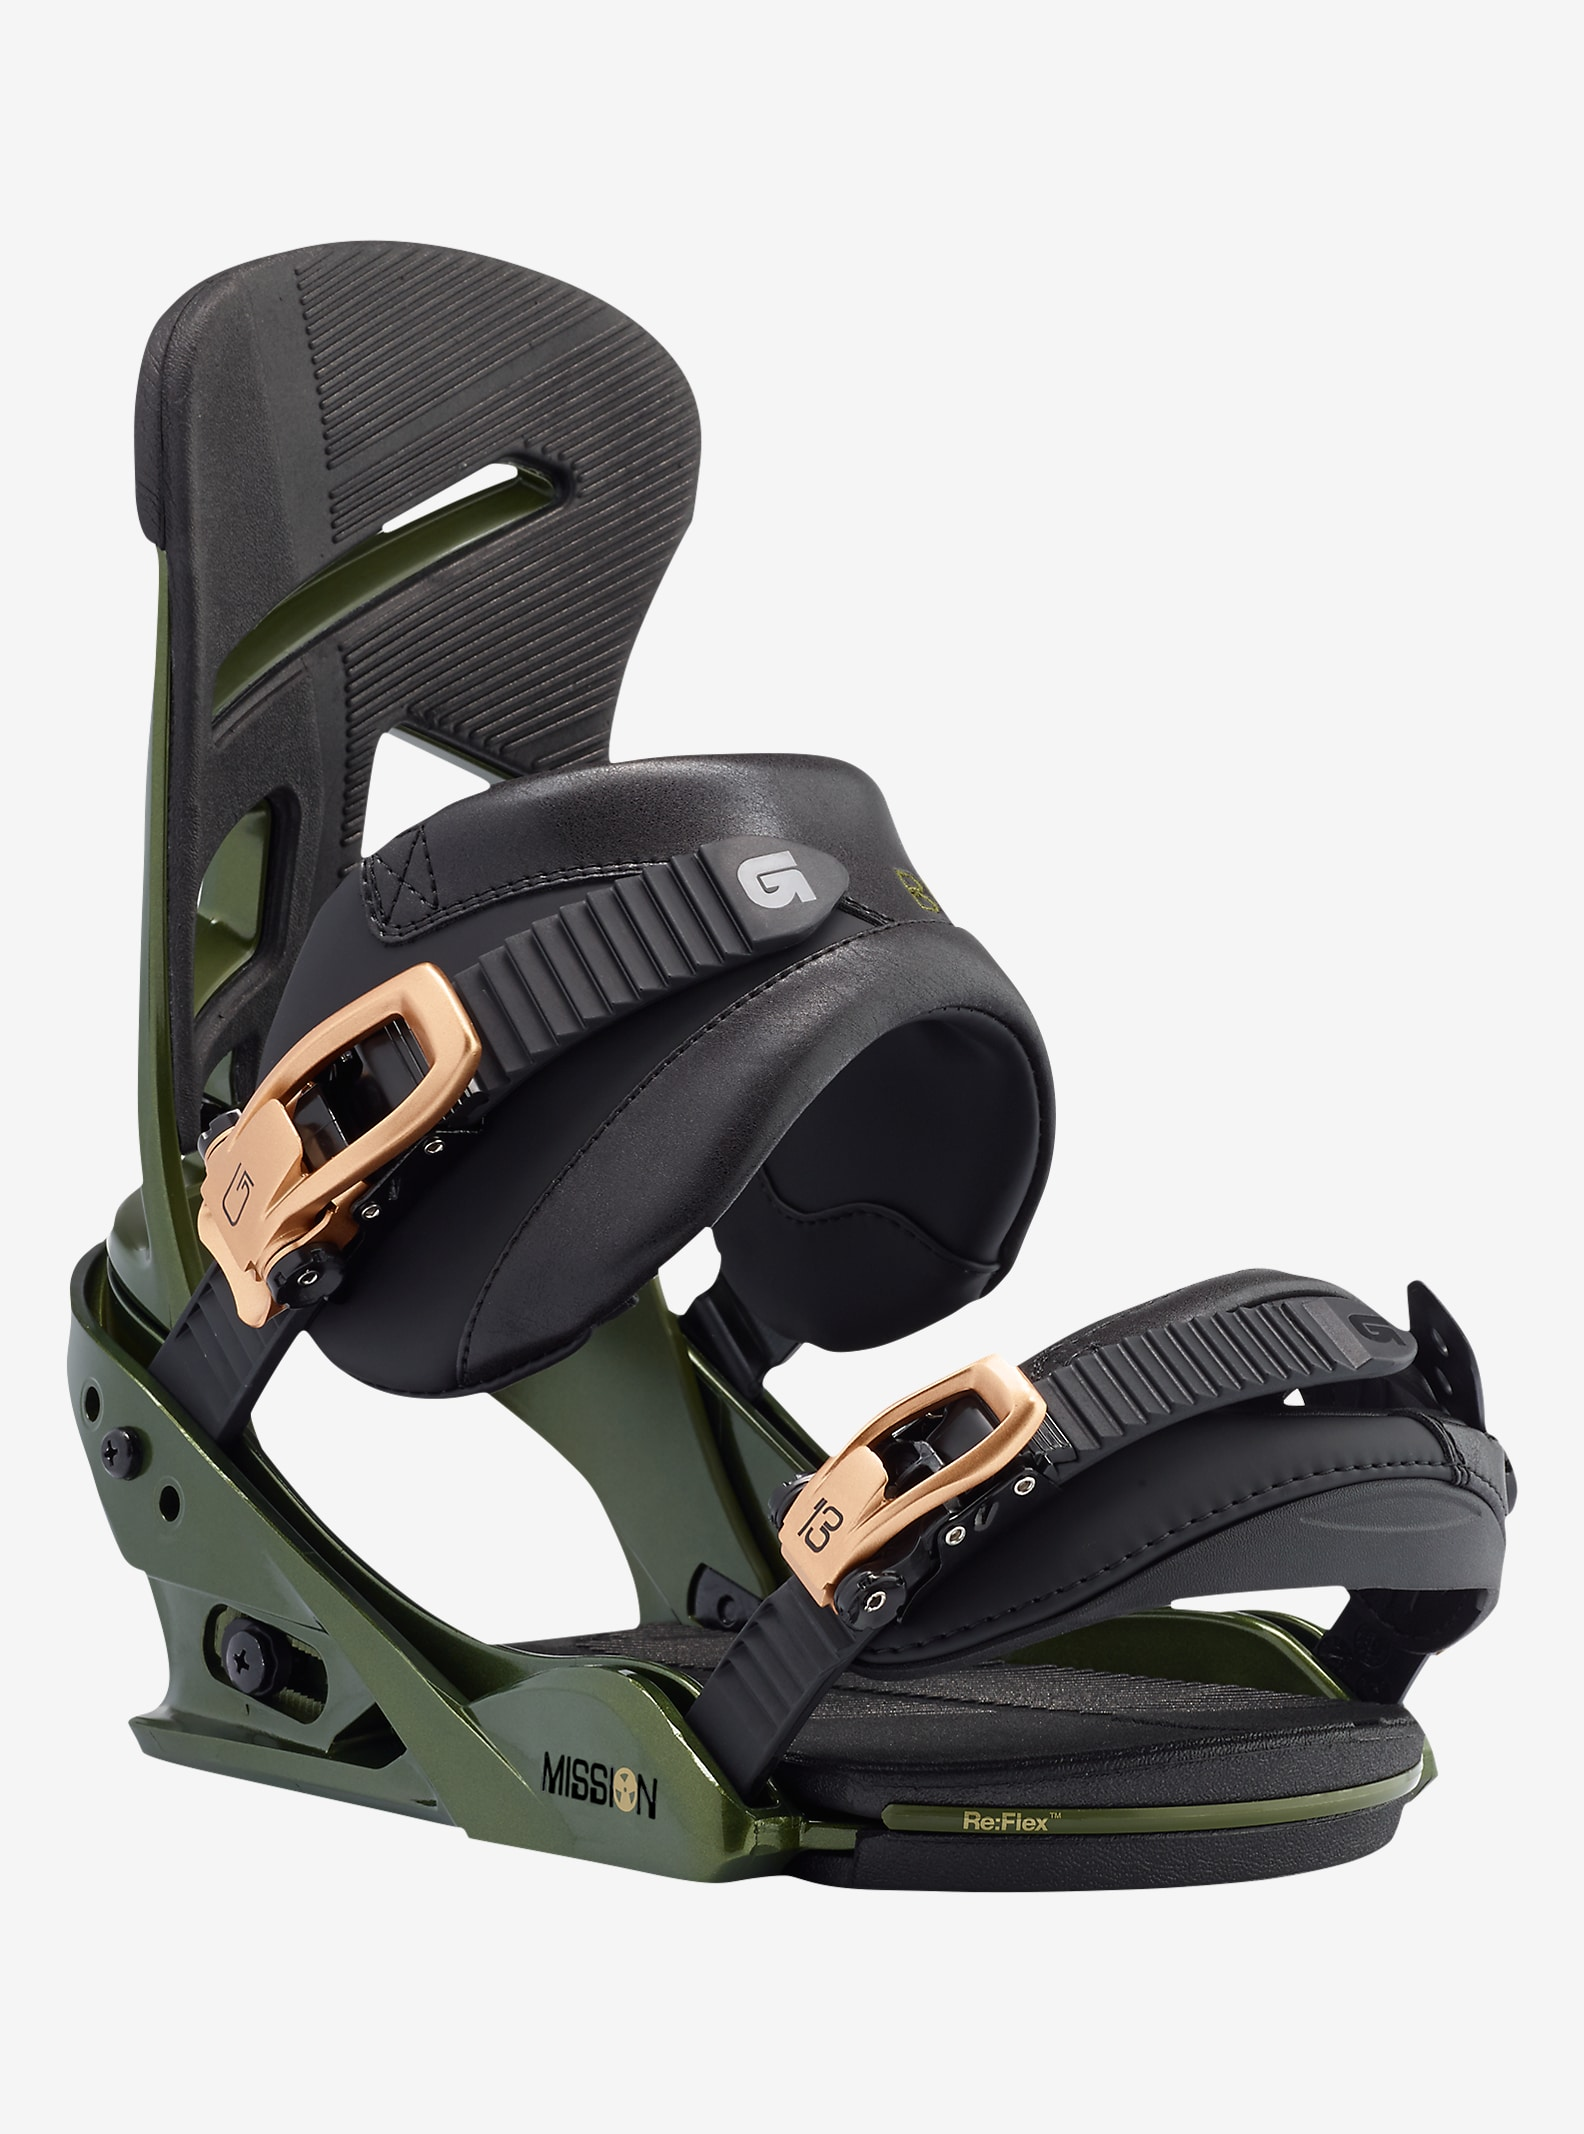 Burton Mission Snowboard Binding shown in Track Day Green